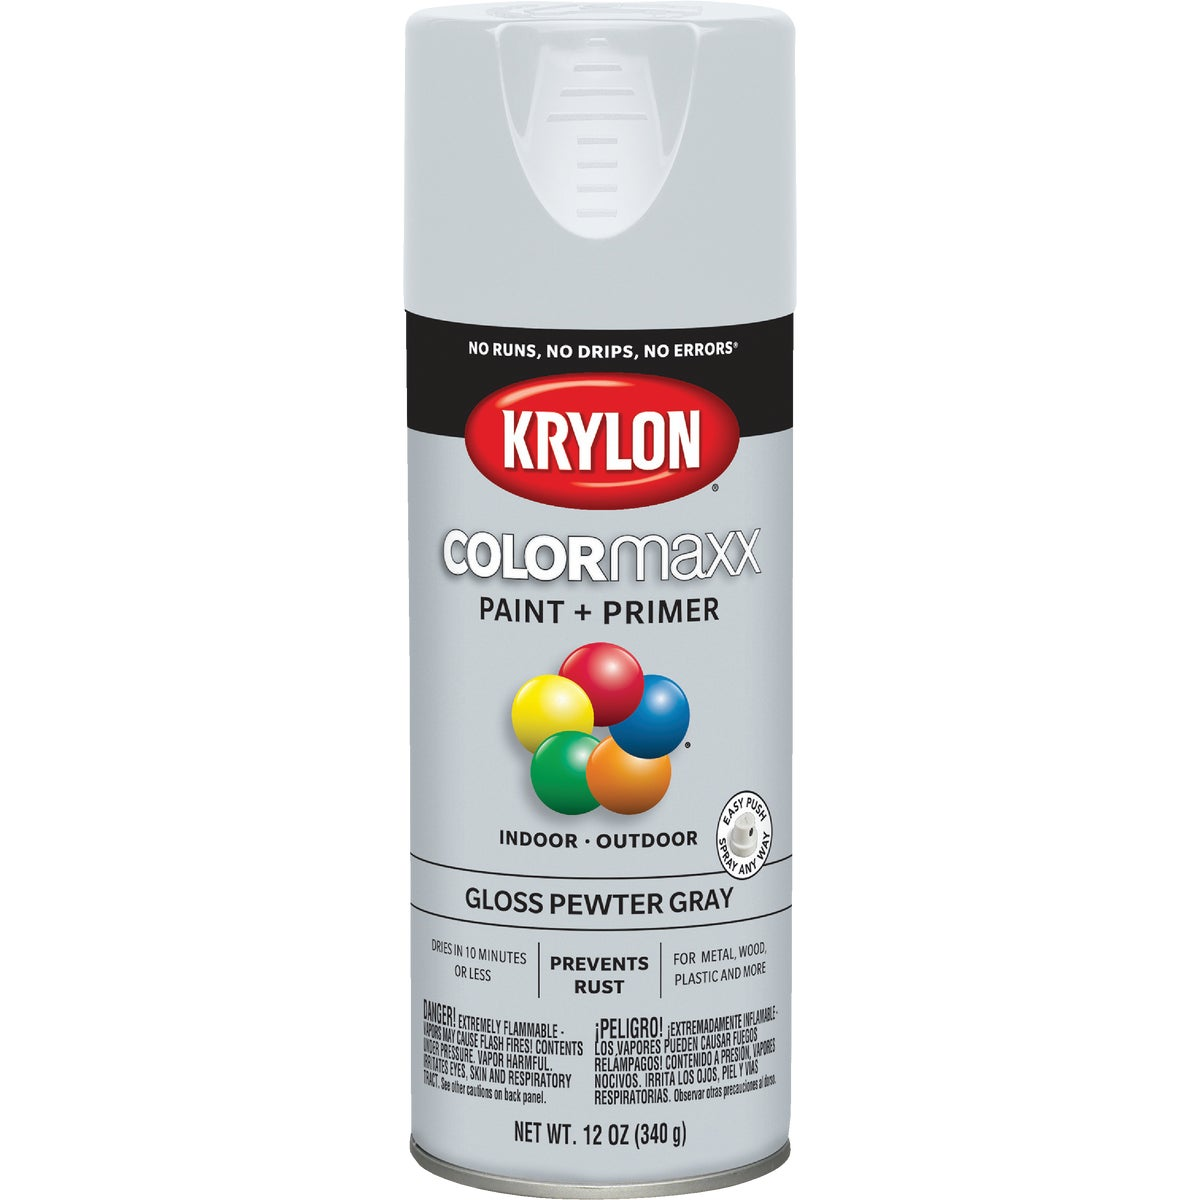 GLS PWT GRAY SPRAY PAINT - 51606 by Krylon/consumer Div